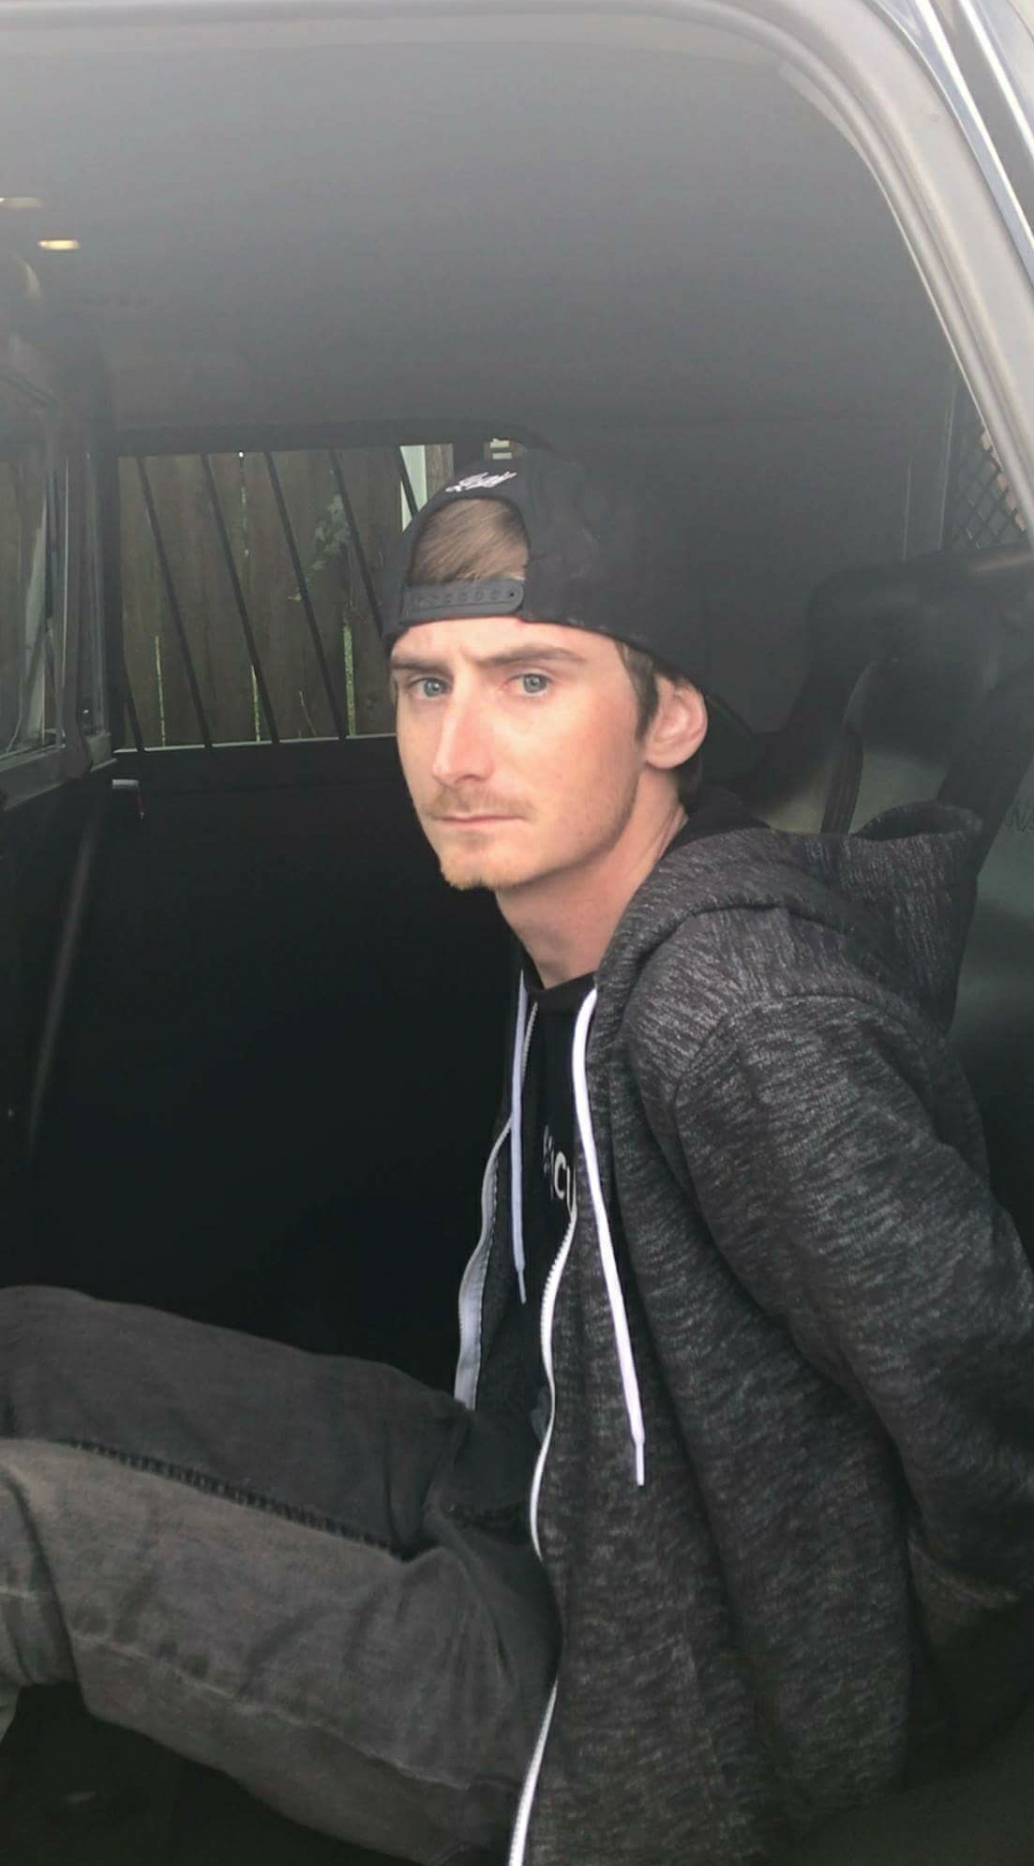 ATWATER MAN INJECTS DRUGS, FALLS ASLEEP IN HIS VEHICLE